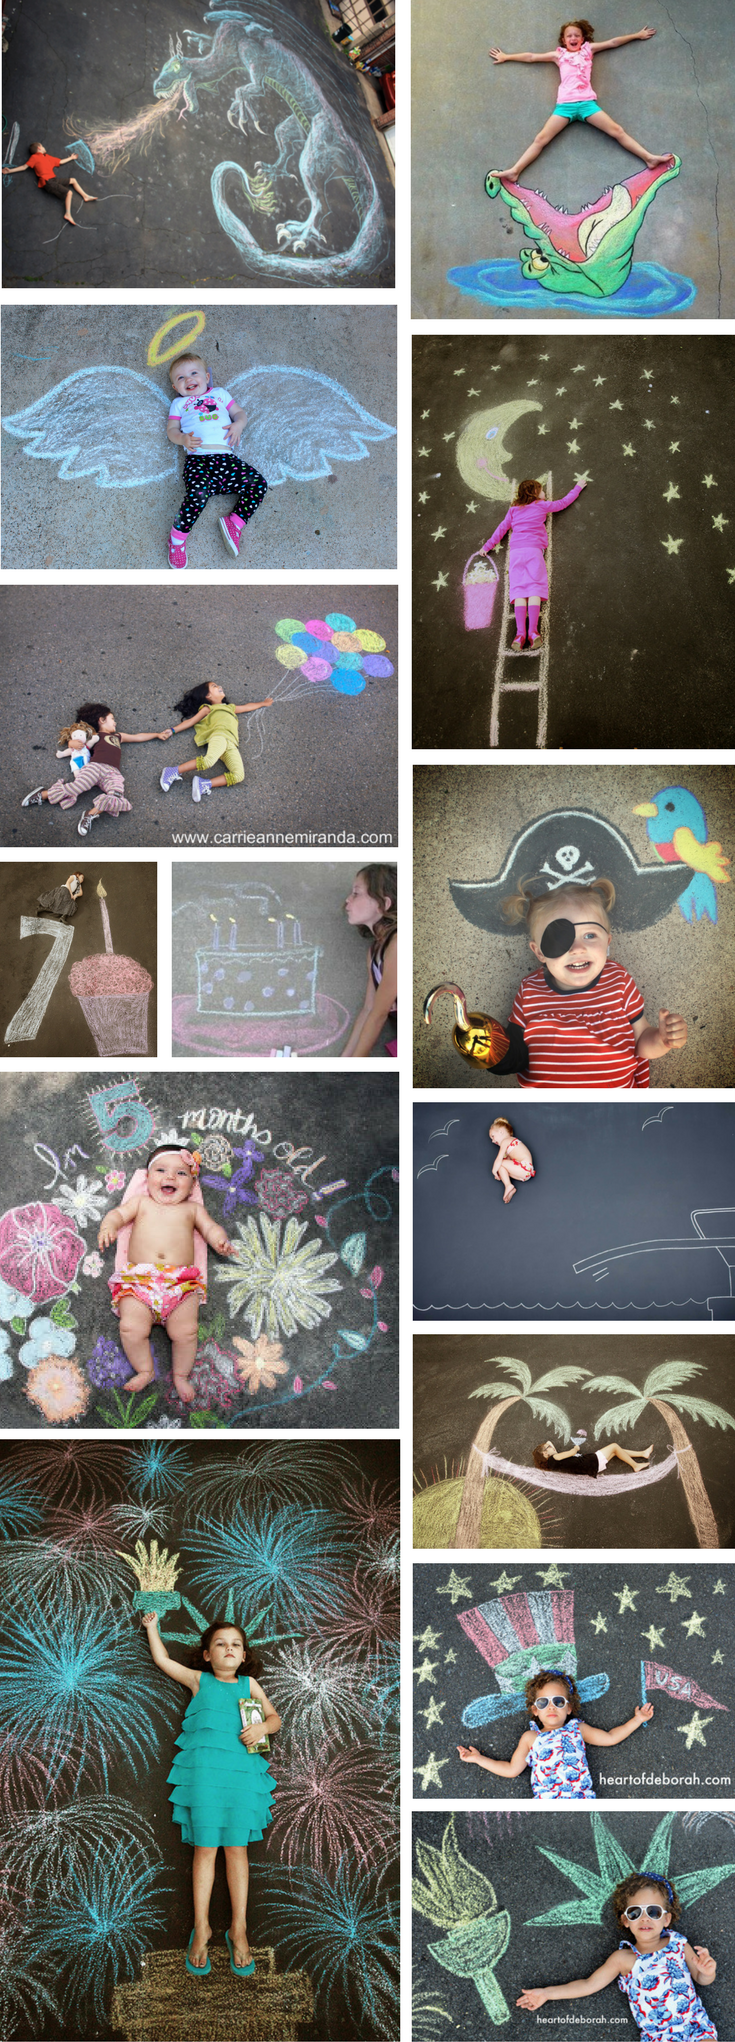 101 Genius Sidewalk Chalk Ideas To Crush Summertime Boredom - what moms love